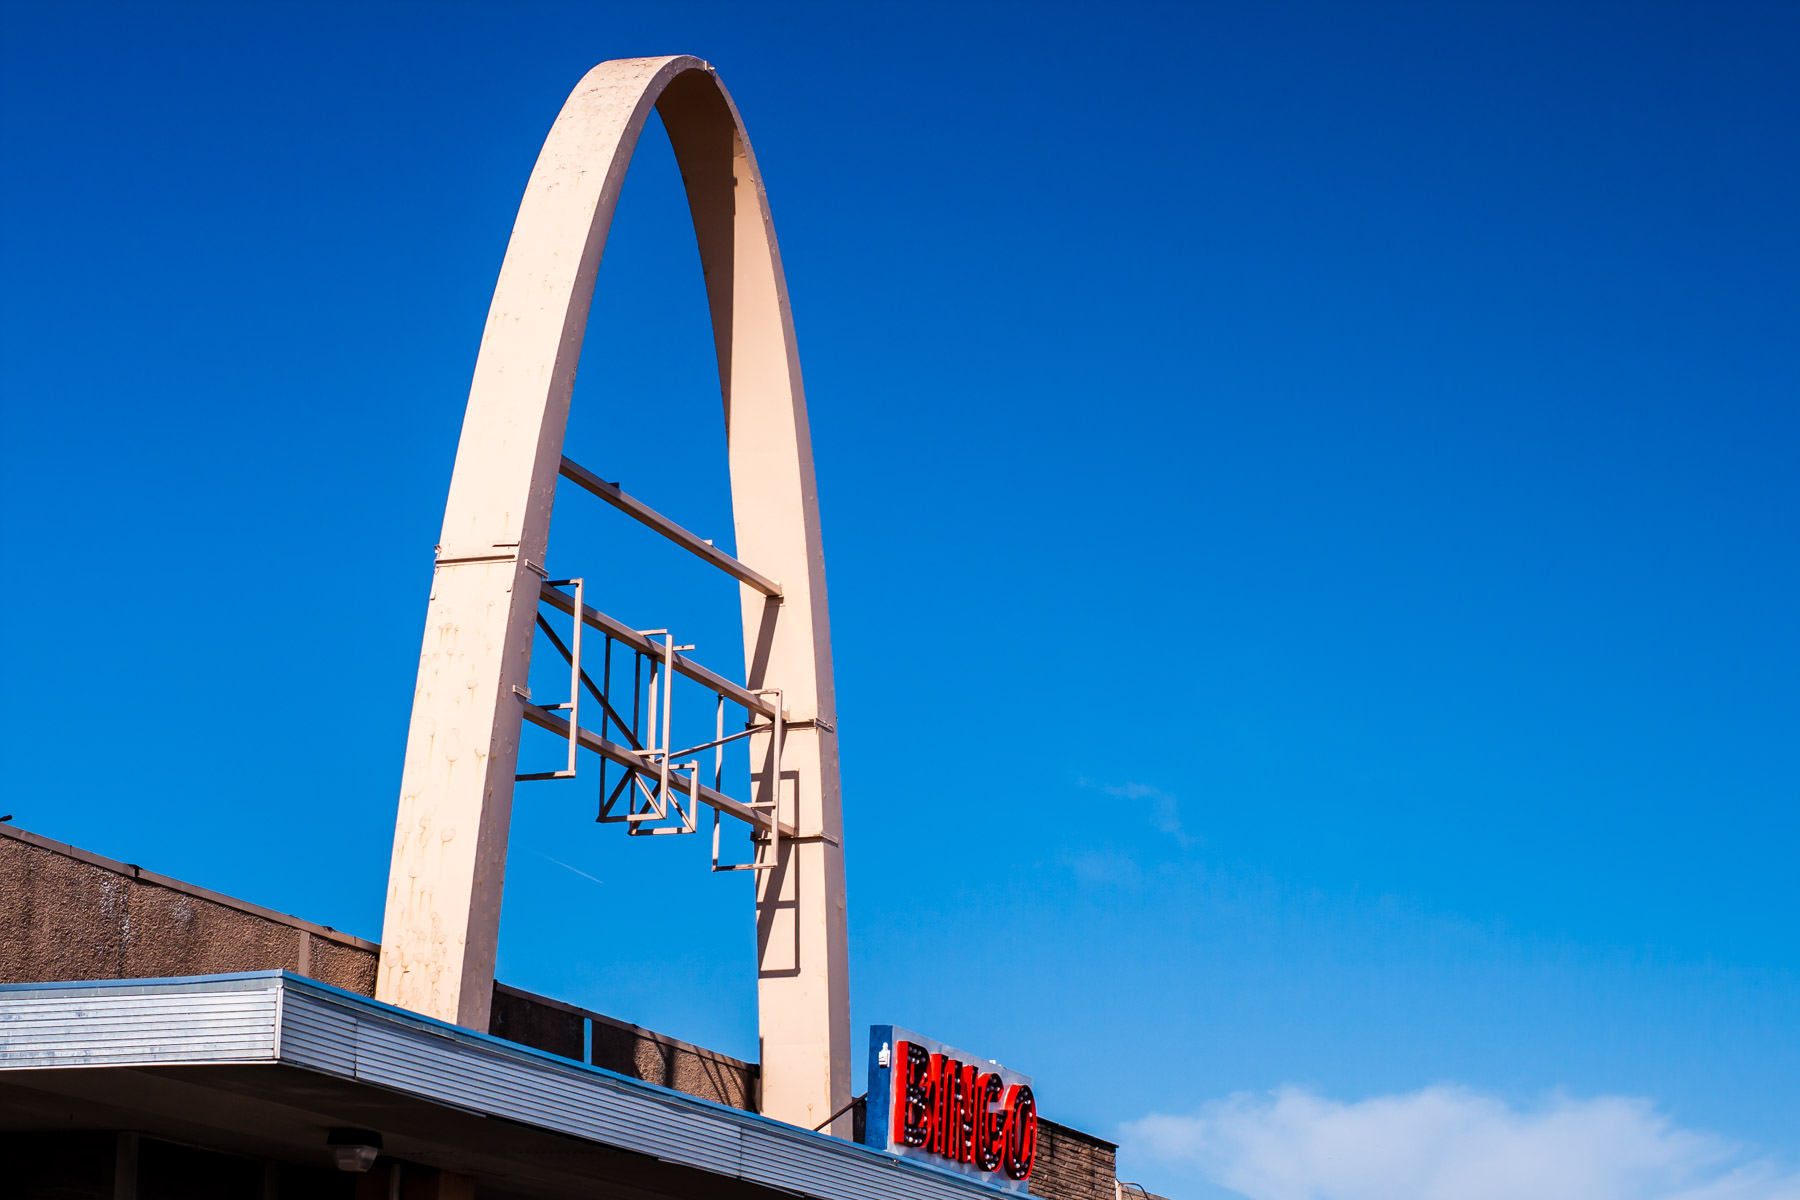 A whimsical arch on the roof of the Town East Bingo hall in Mesquite, Texas.